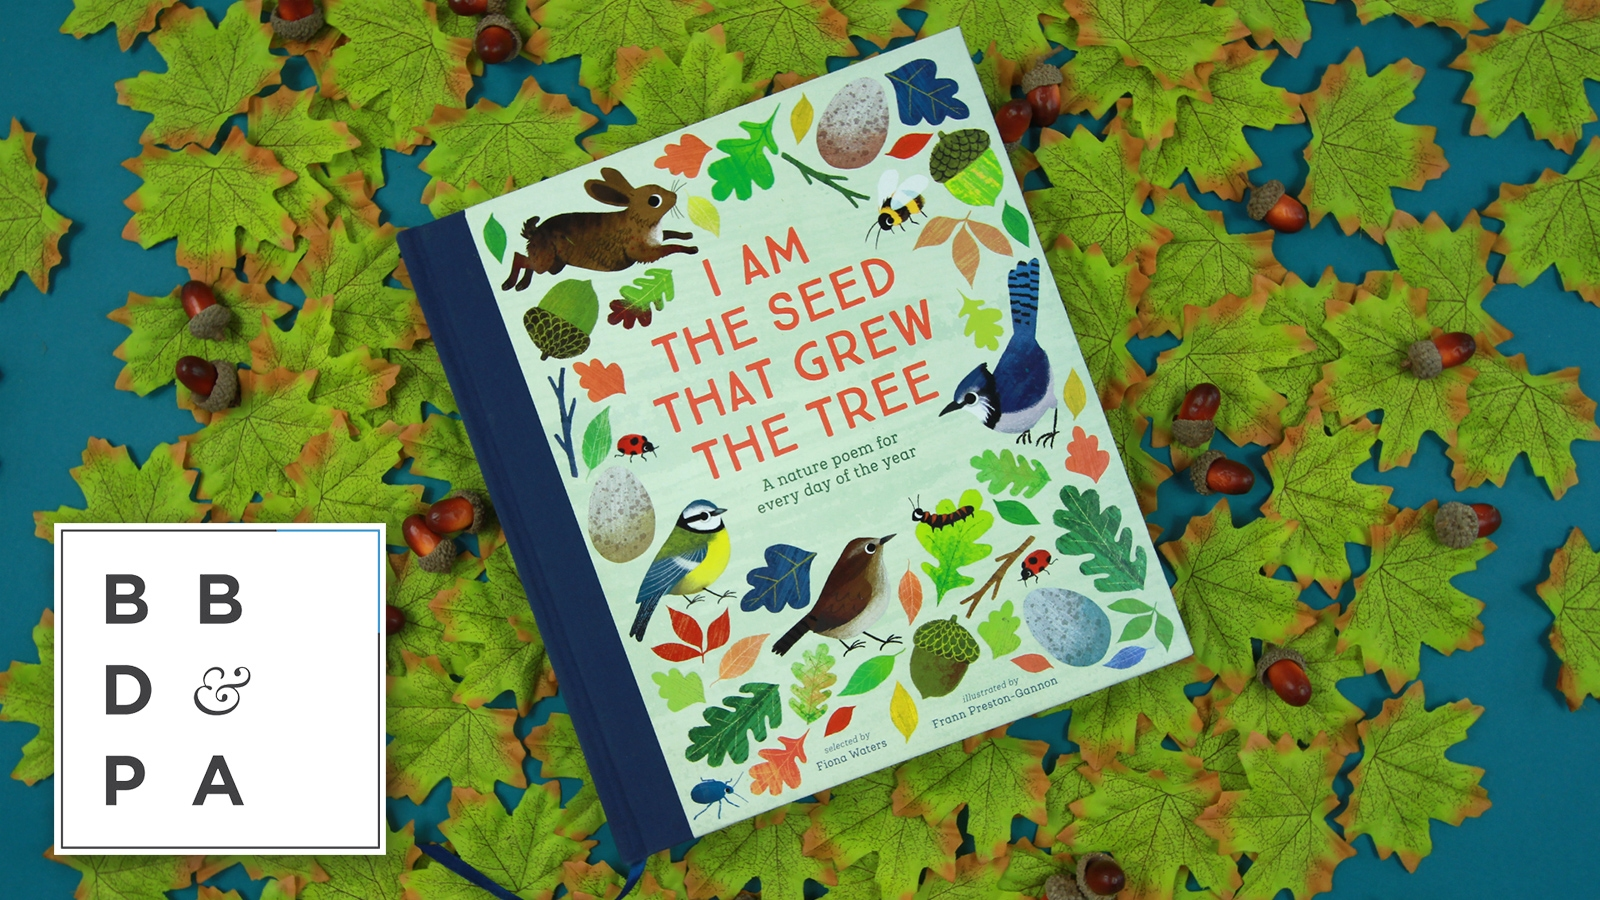 I Am The Seed That Grew The Tree - BBD&PA Award Winner Children's 0-8 Years Category